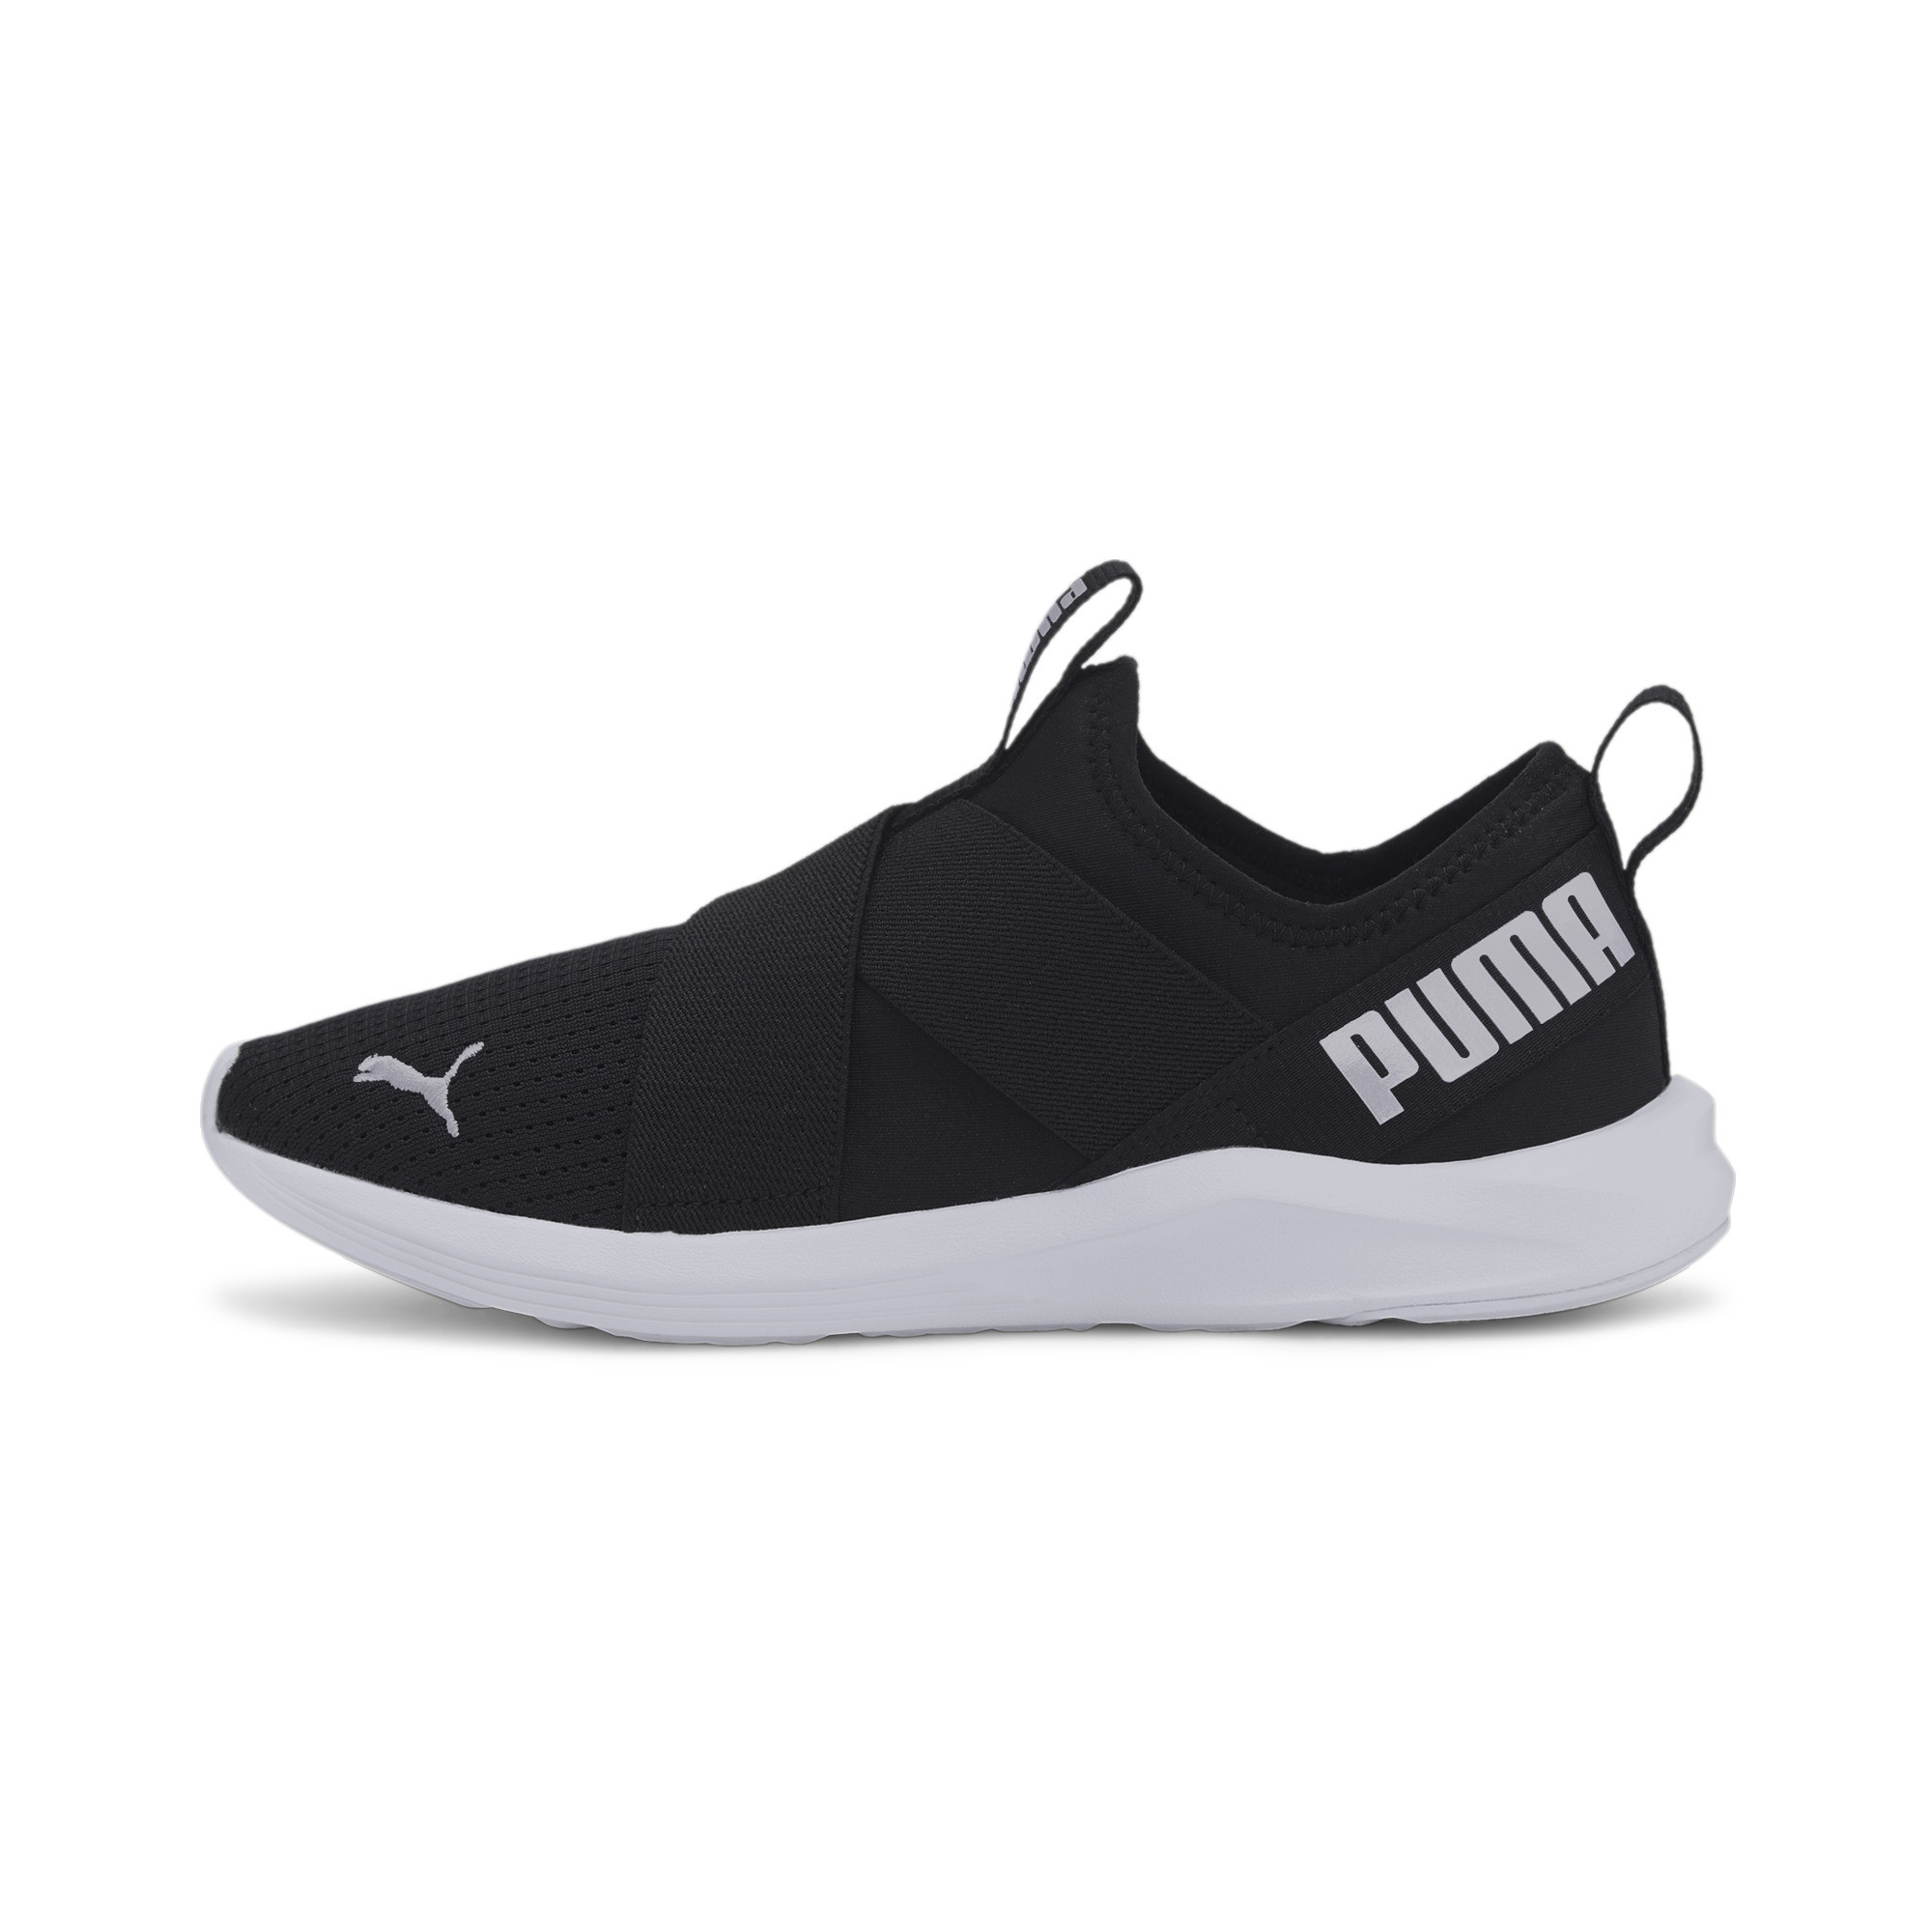 PUMA-Women-039-s-Prowl-Slip-On-Training-Shoes thumbnail 23